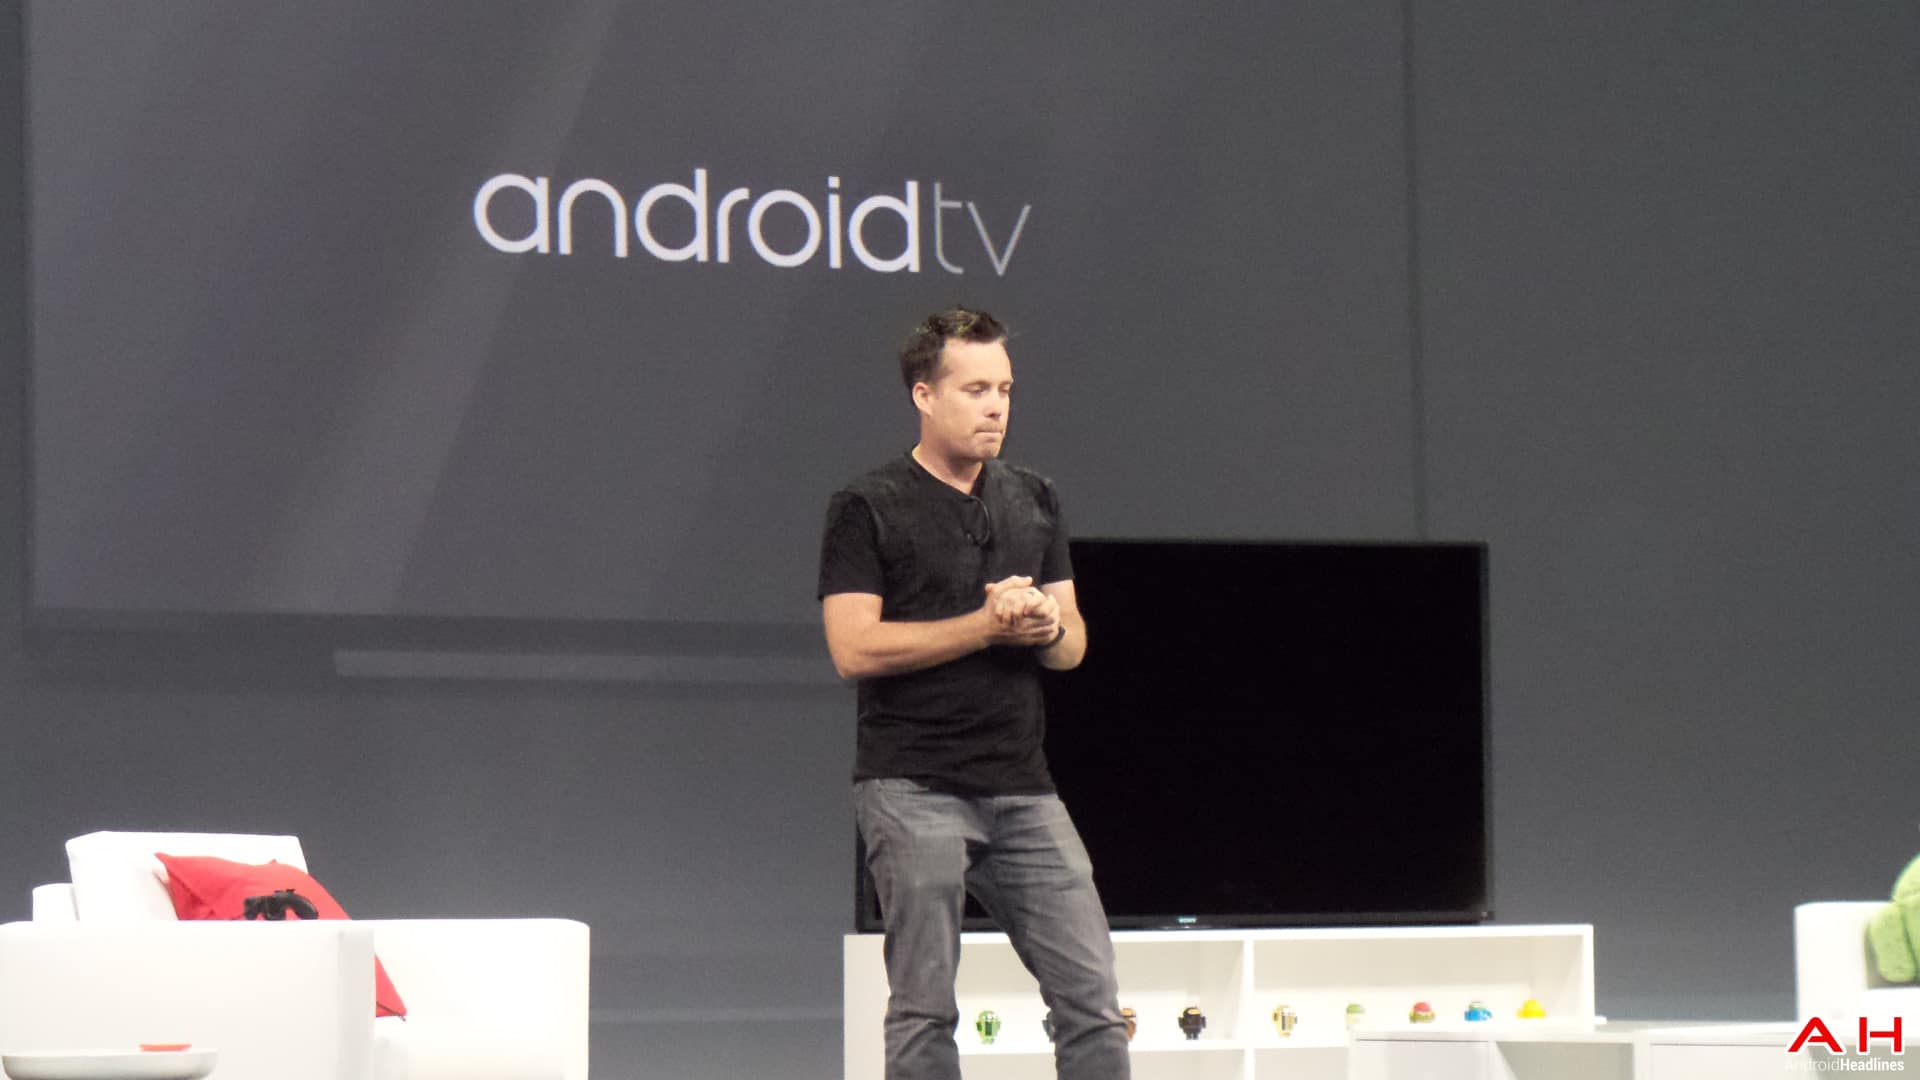 AH Google IO 2014 407 of 9 android TV logo